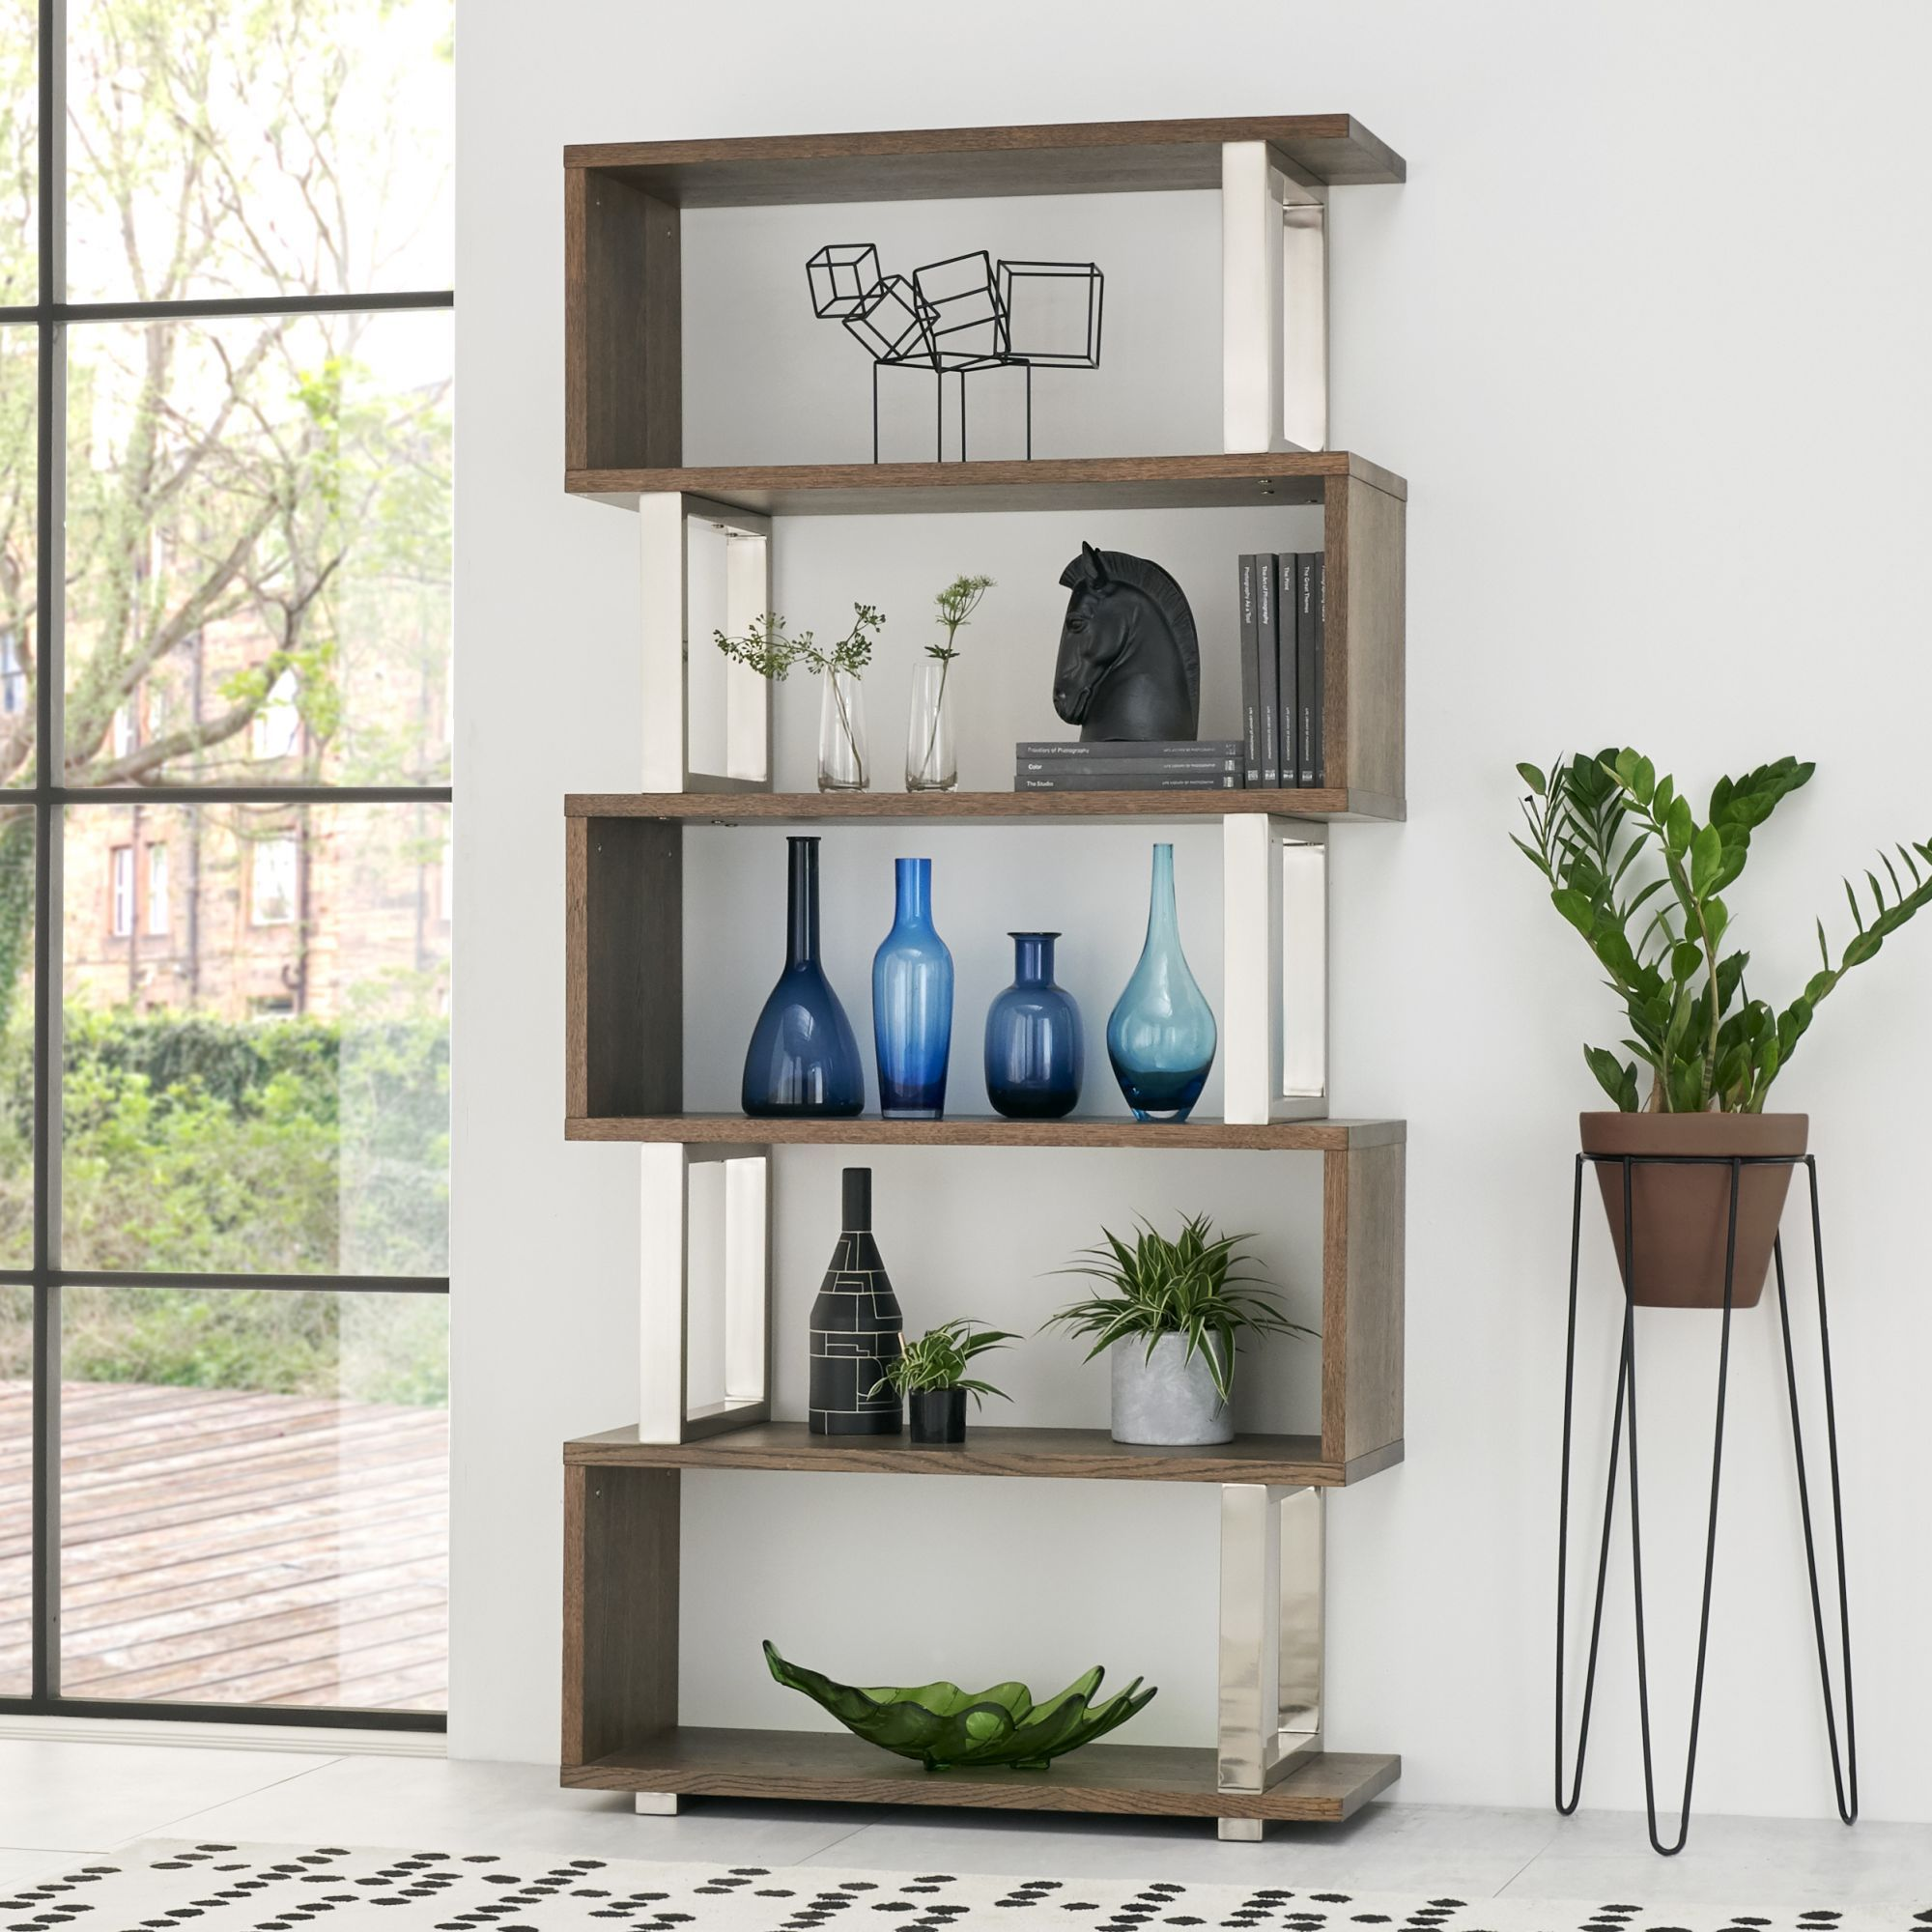 This Bentley Designs Shelf Unit Is Lovely!